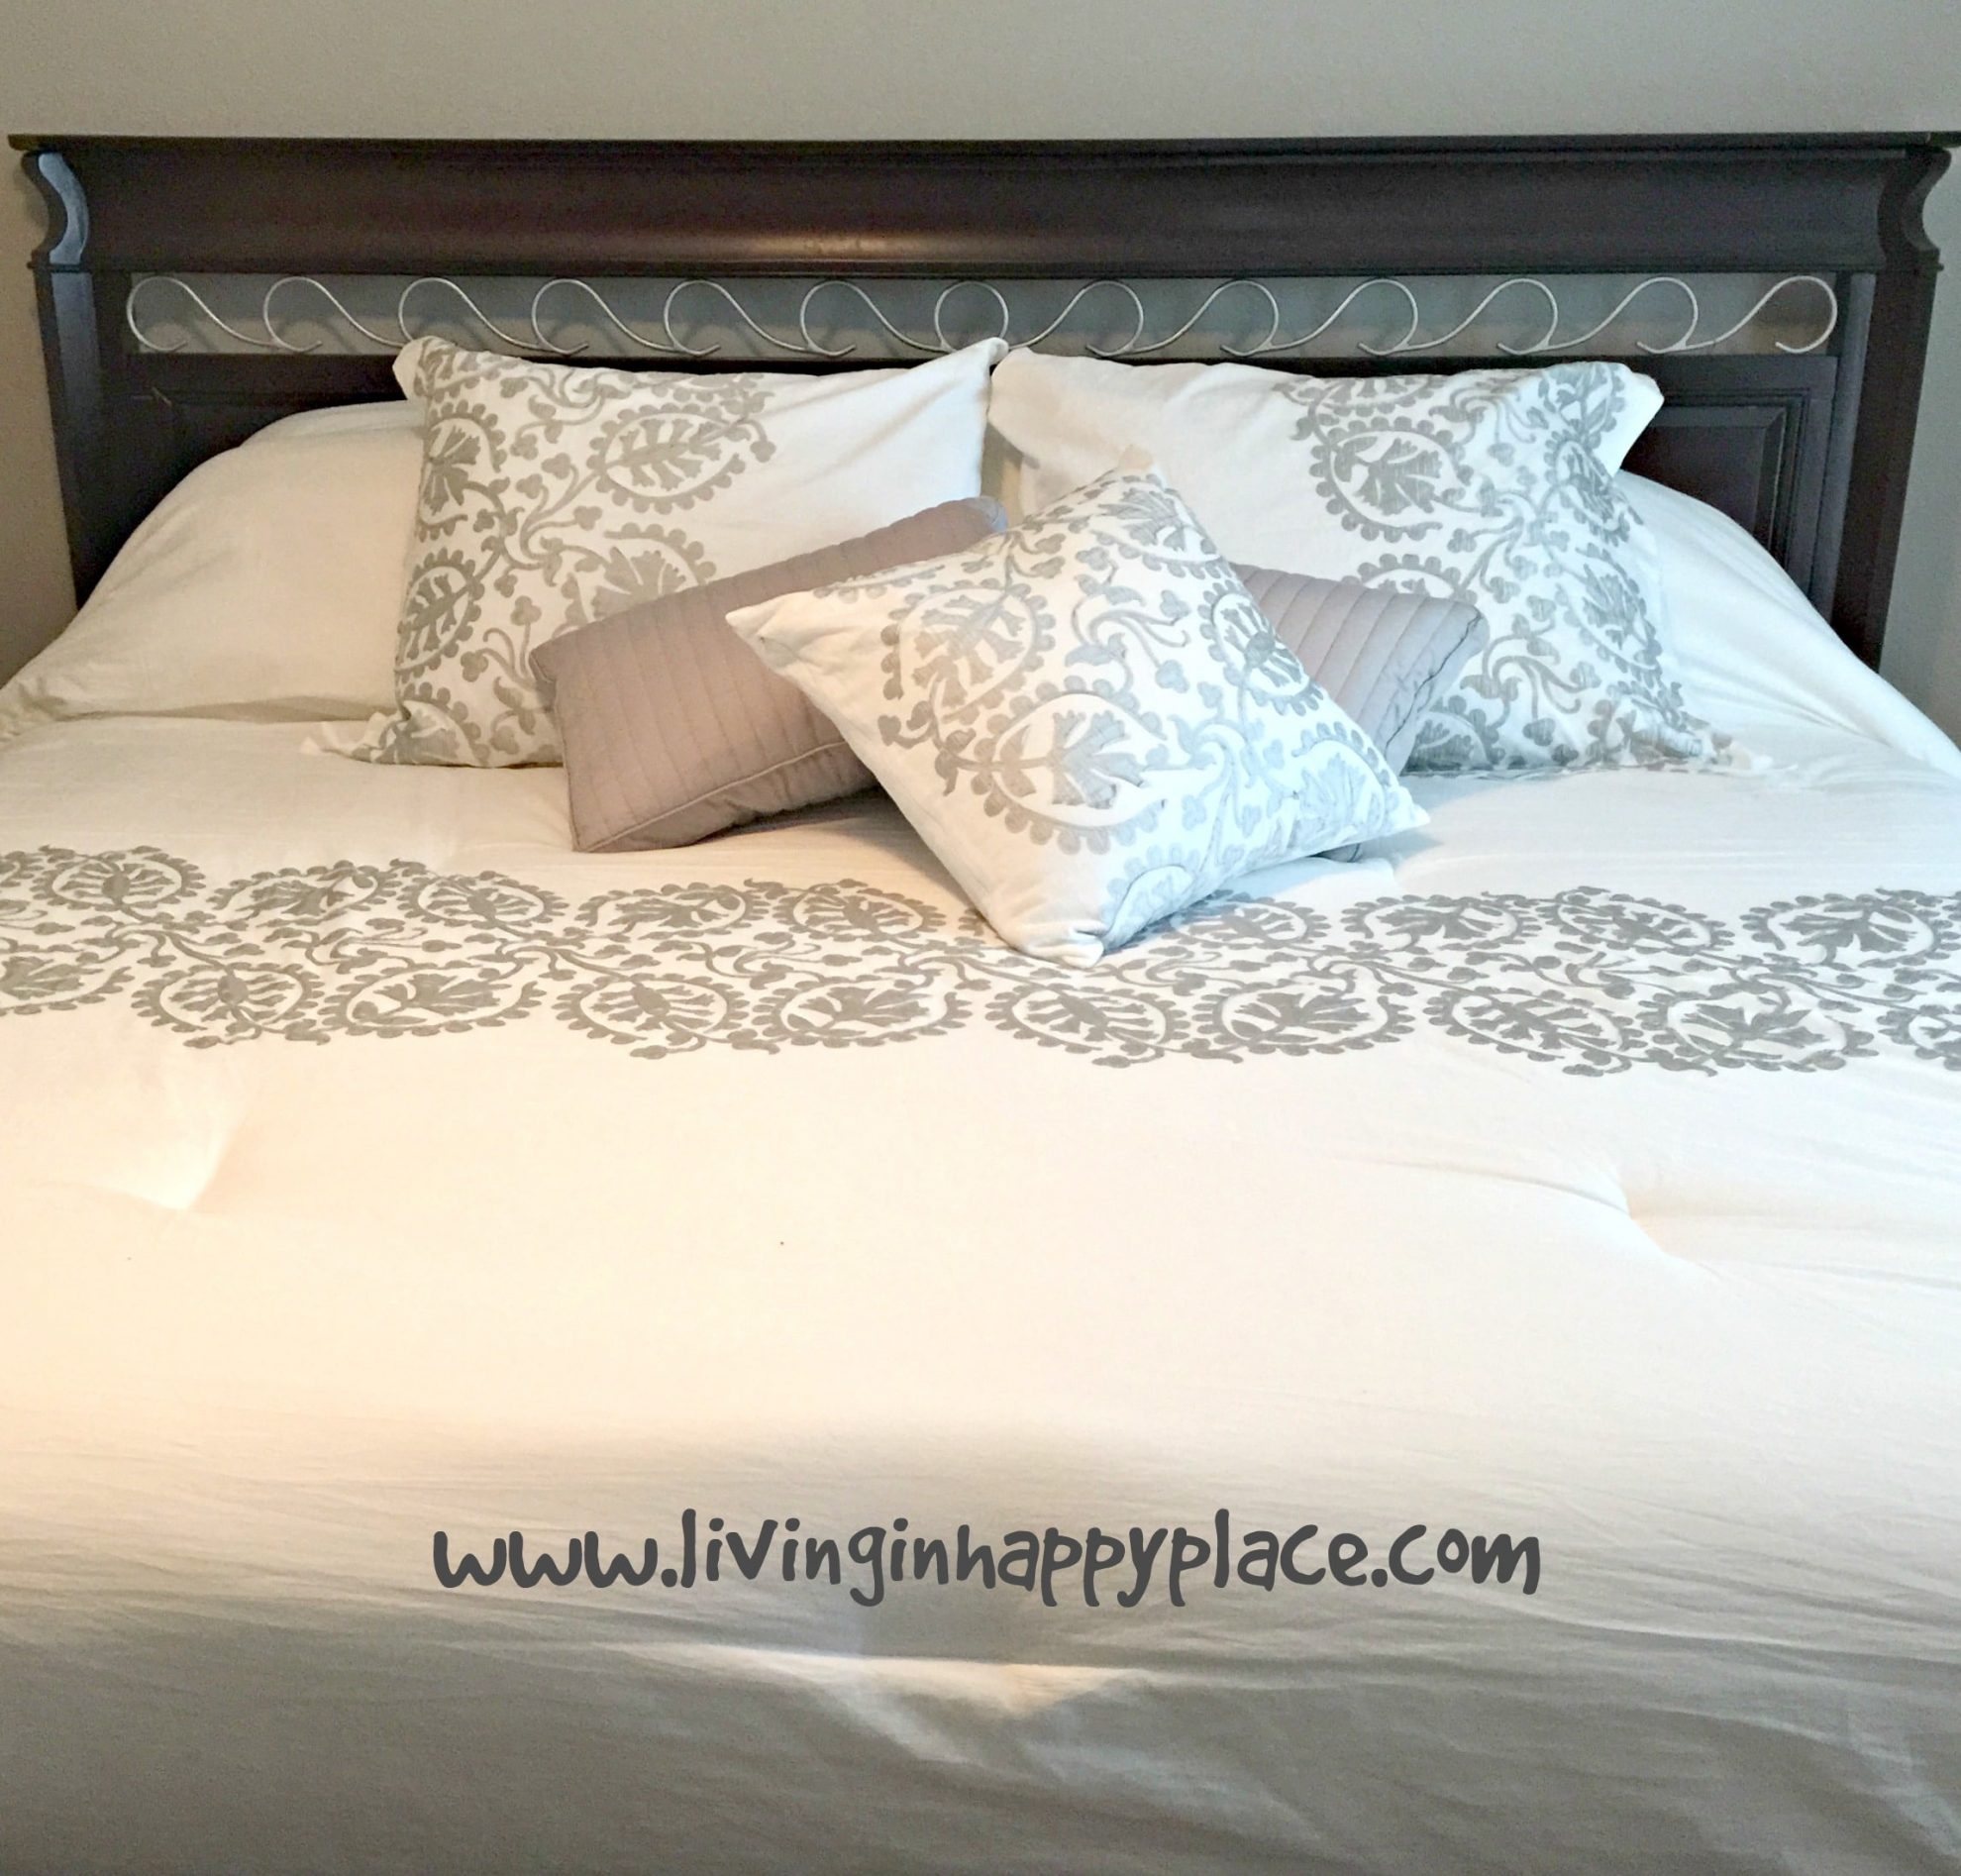 Making your bed can be motivating